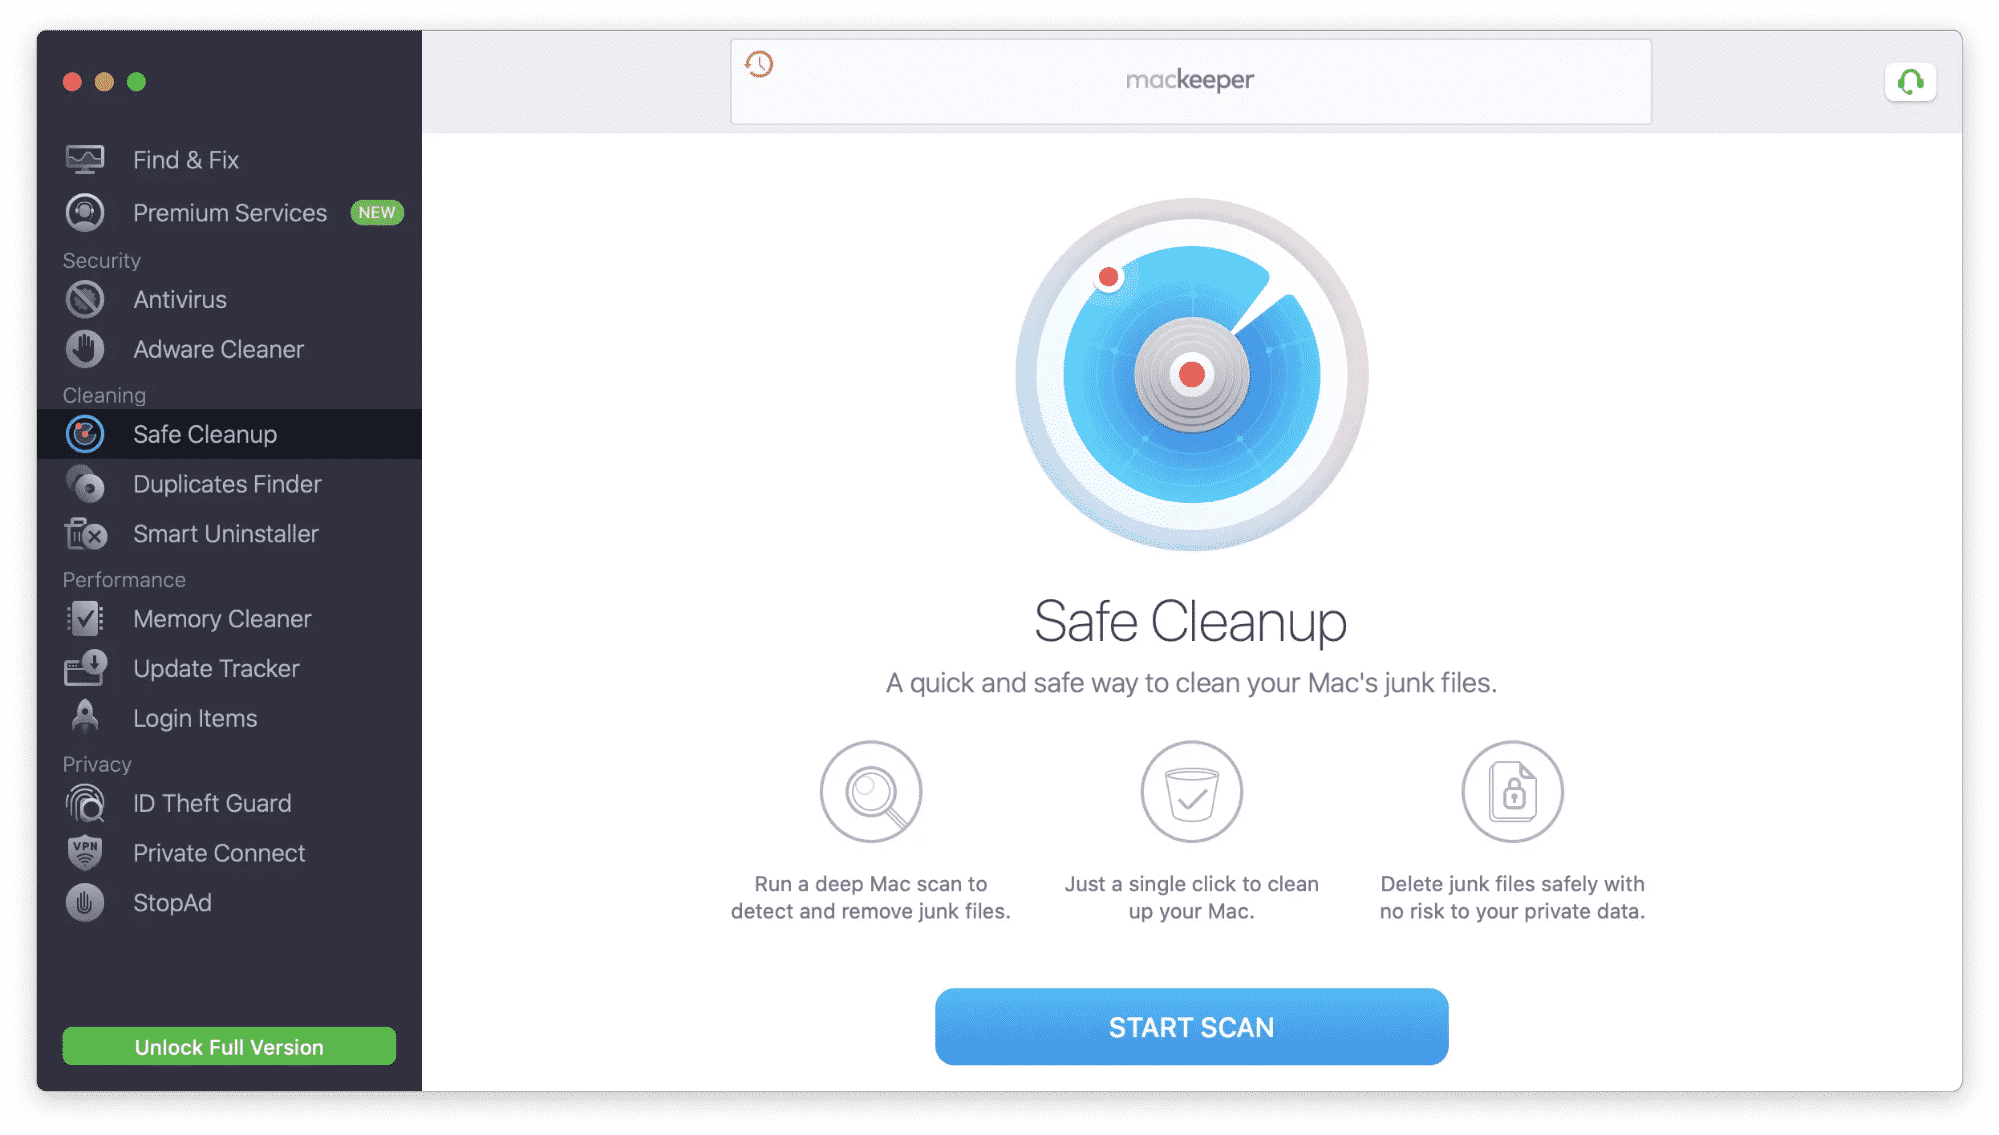 MacKeeper window showing Safe Cleanup section